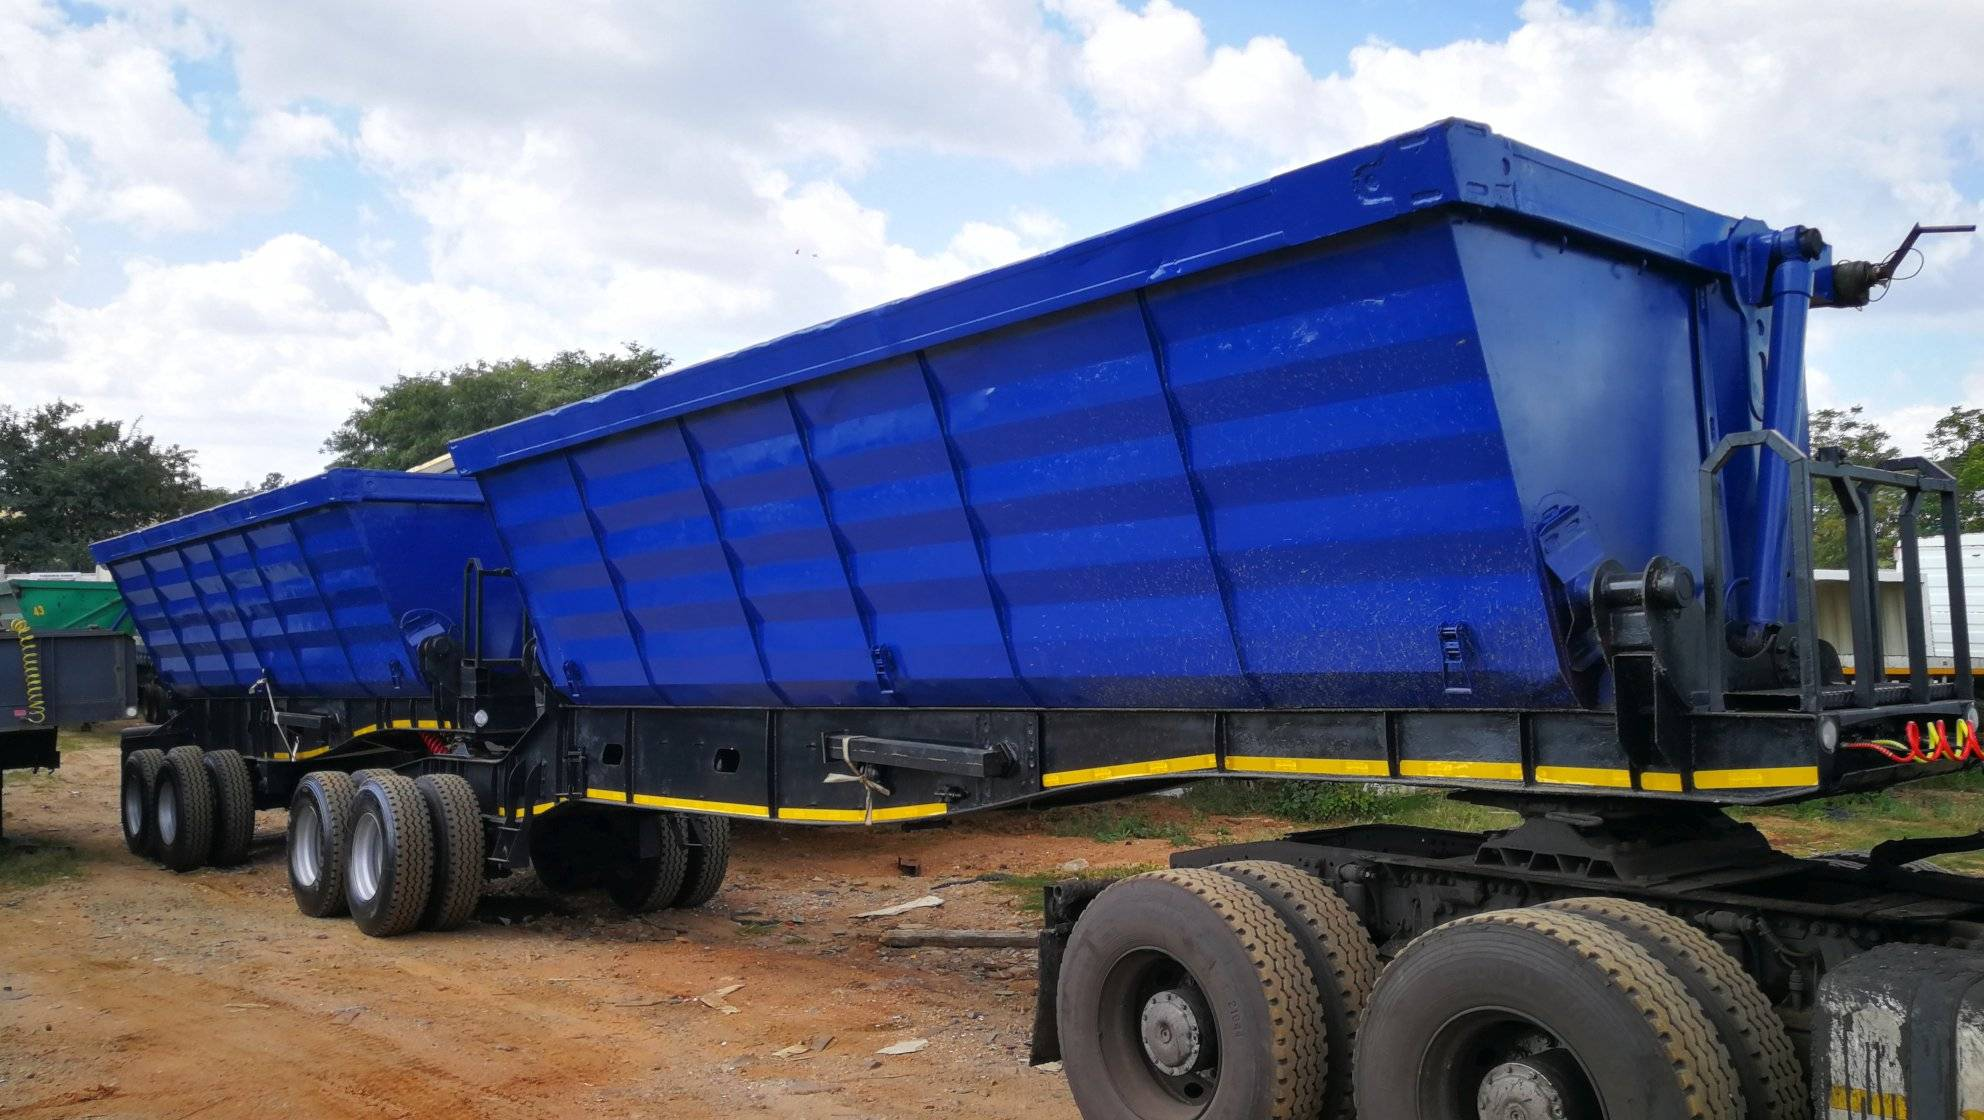 Start Your Own Trucking Business, 34 Ton Side Tippers, Become A Trucker In Port Nolloth, Northern Cape